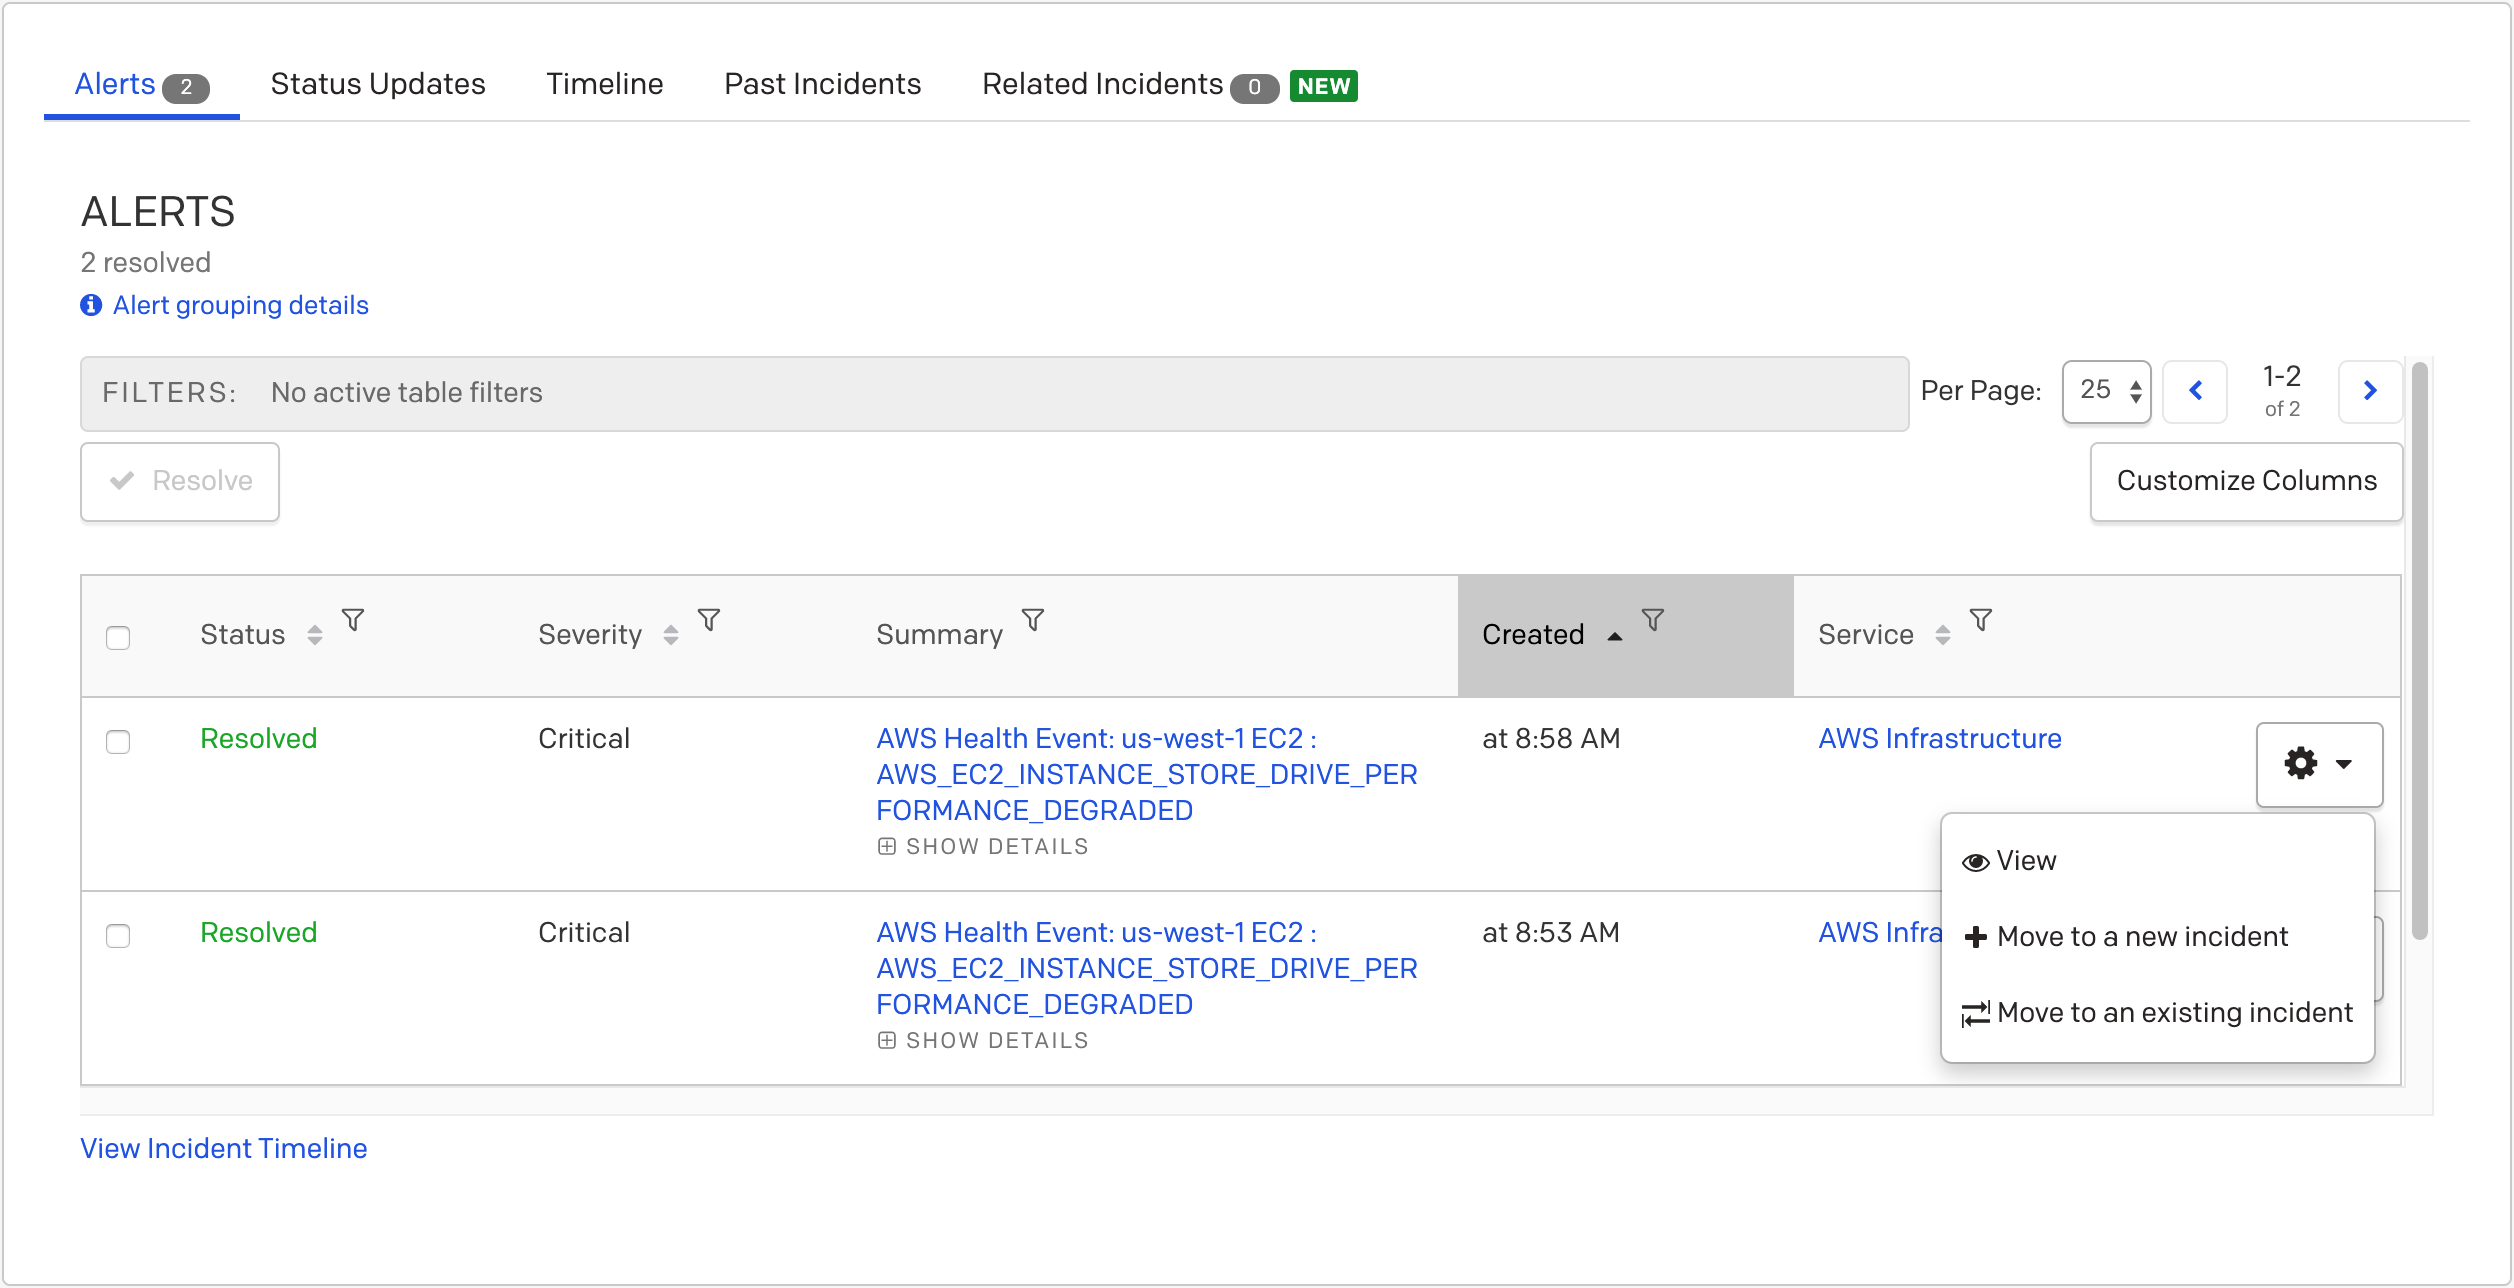 (4) How to manually move alerts to an existing or new incident